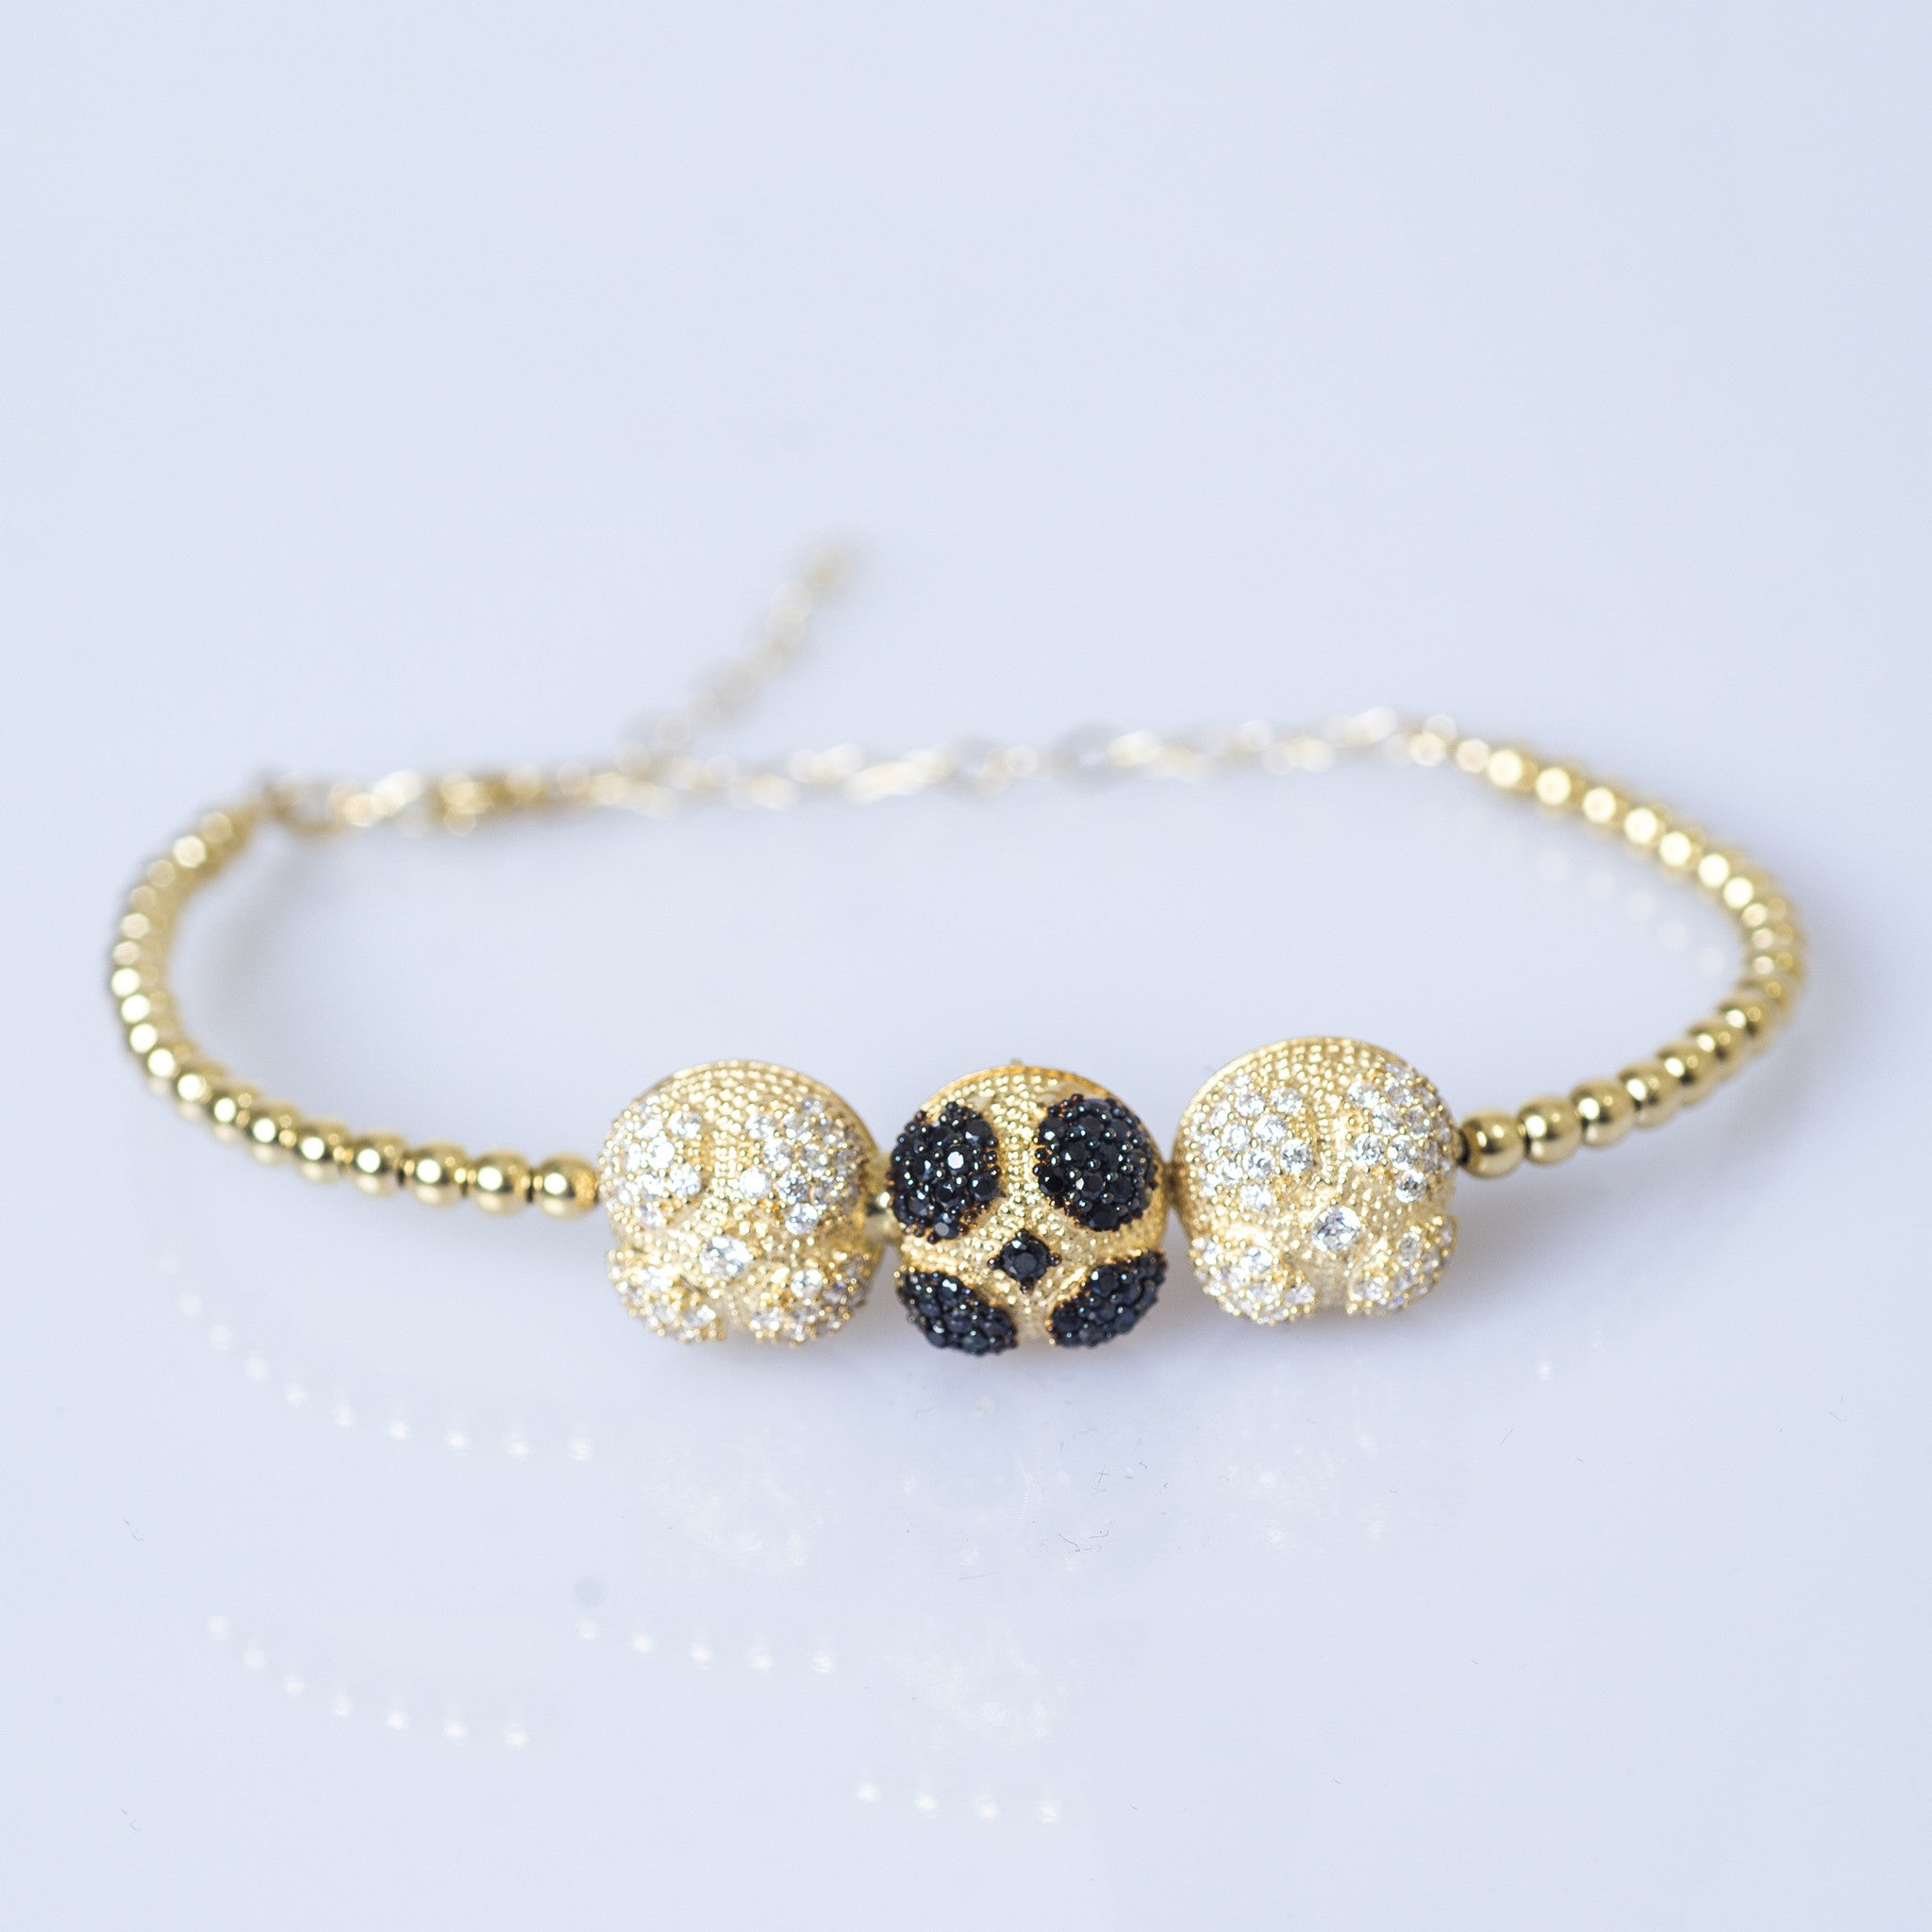 14ct Gold Bracelet with Crystal Elements